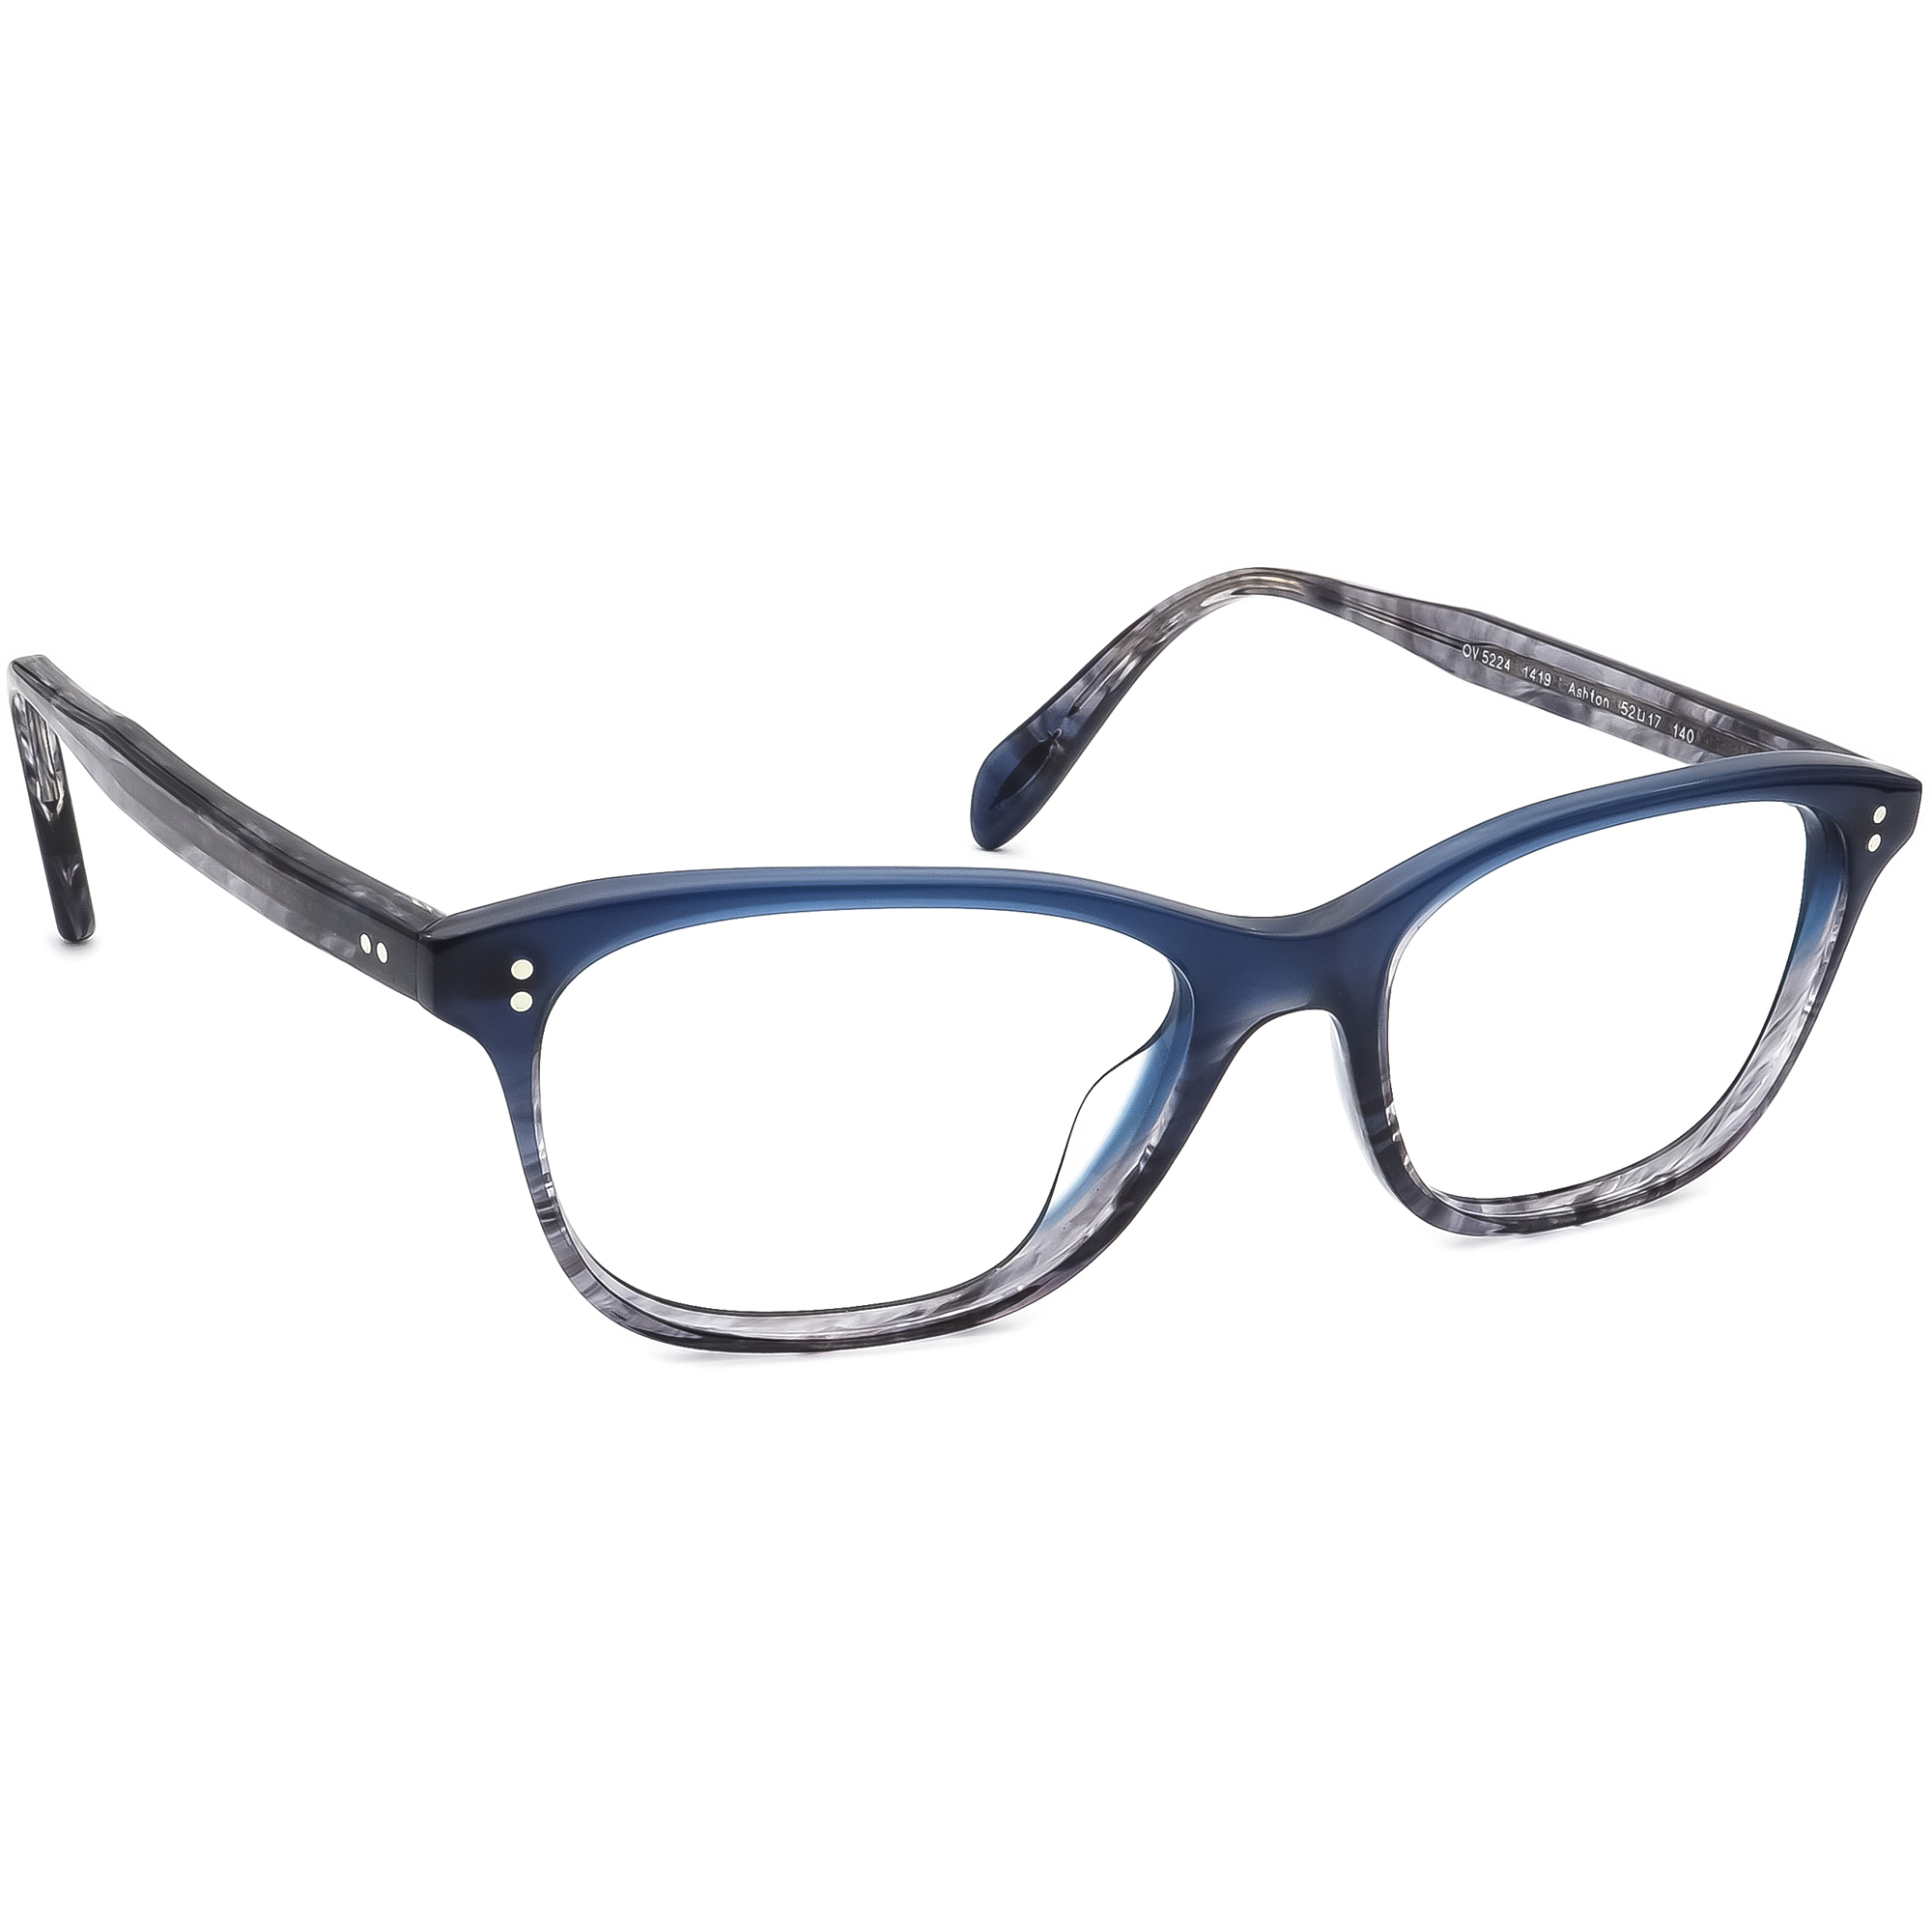 Oliver Peoples OV 5224 1419 Ashton Eyeglasses